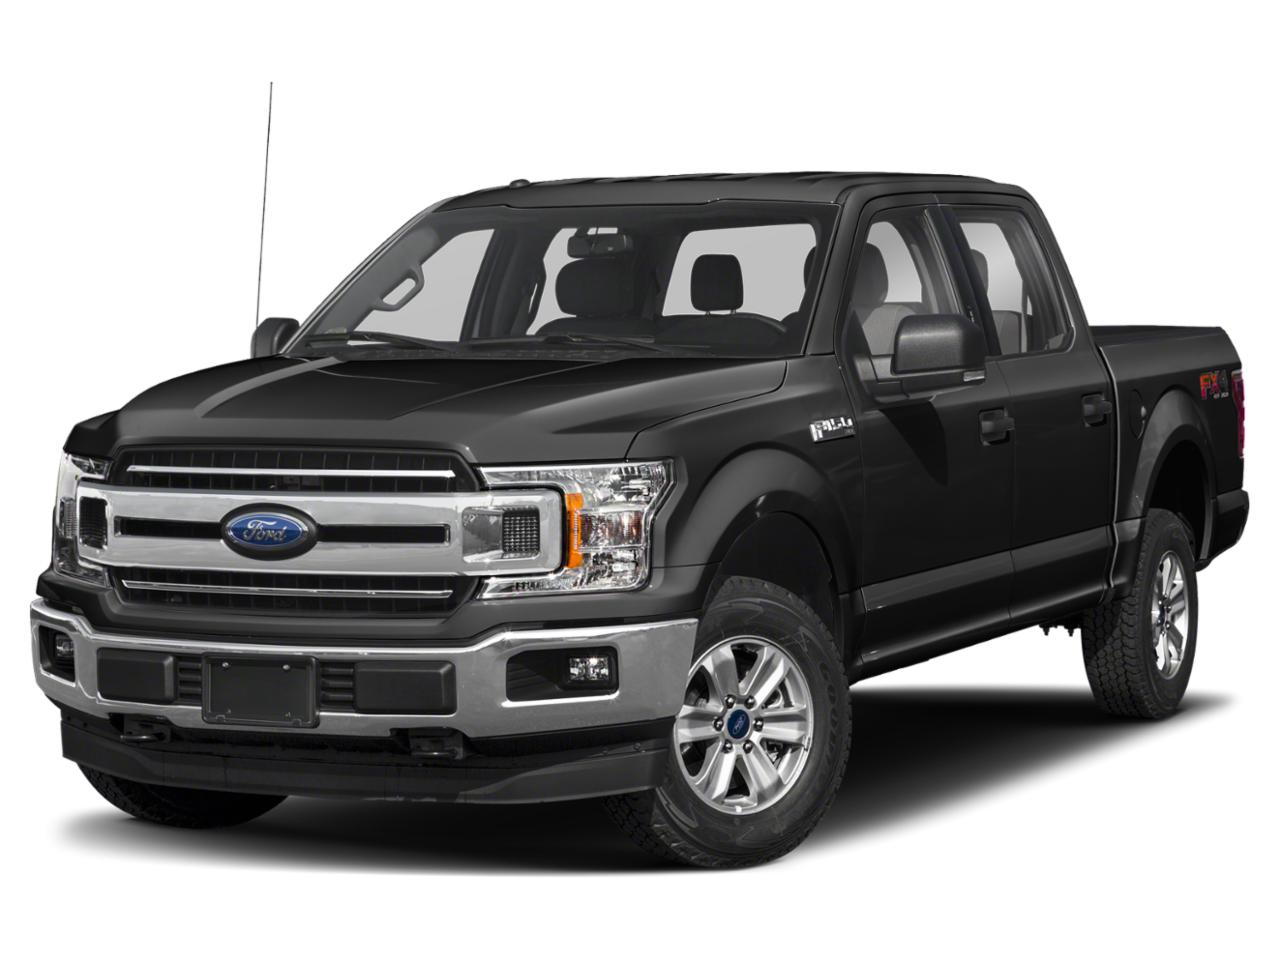 2018 Ford F-150 Vehicle Photo in MIDLAND, TX 79703-7718